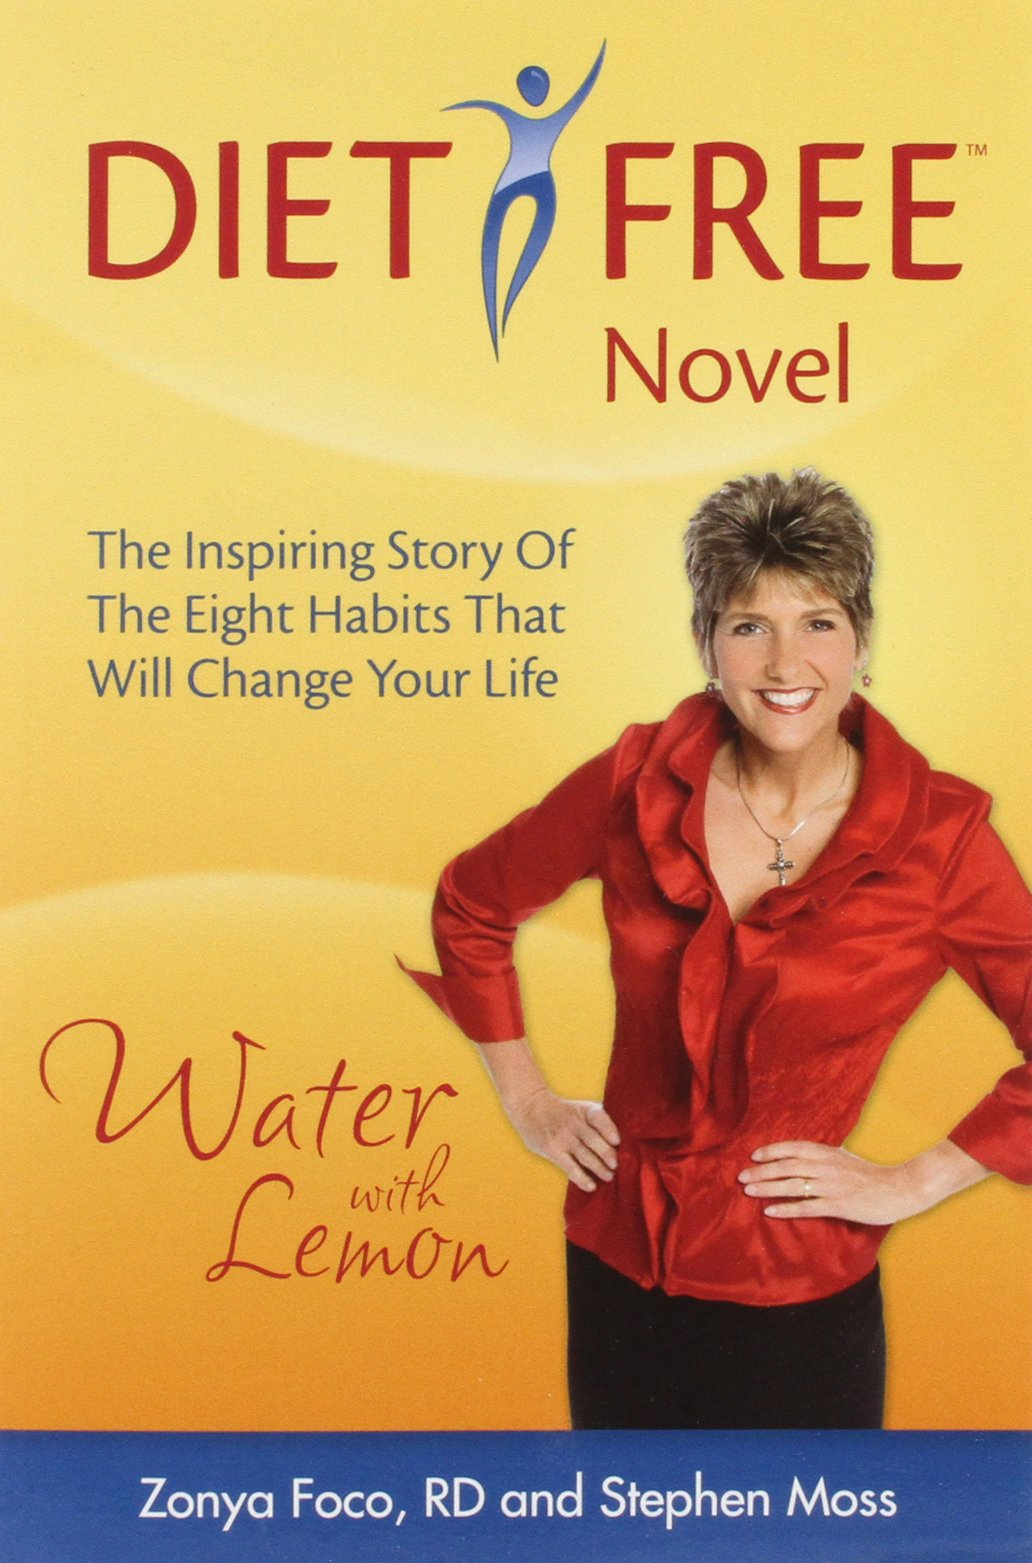 Download Water With Lemon: An Inspiring Story of Diet free, Guilt free Weight Loss!